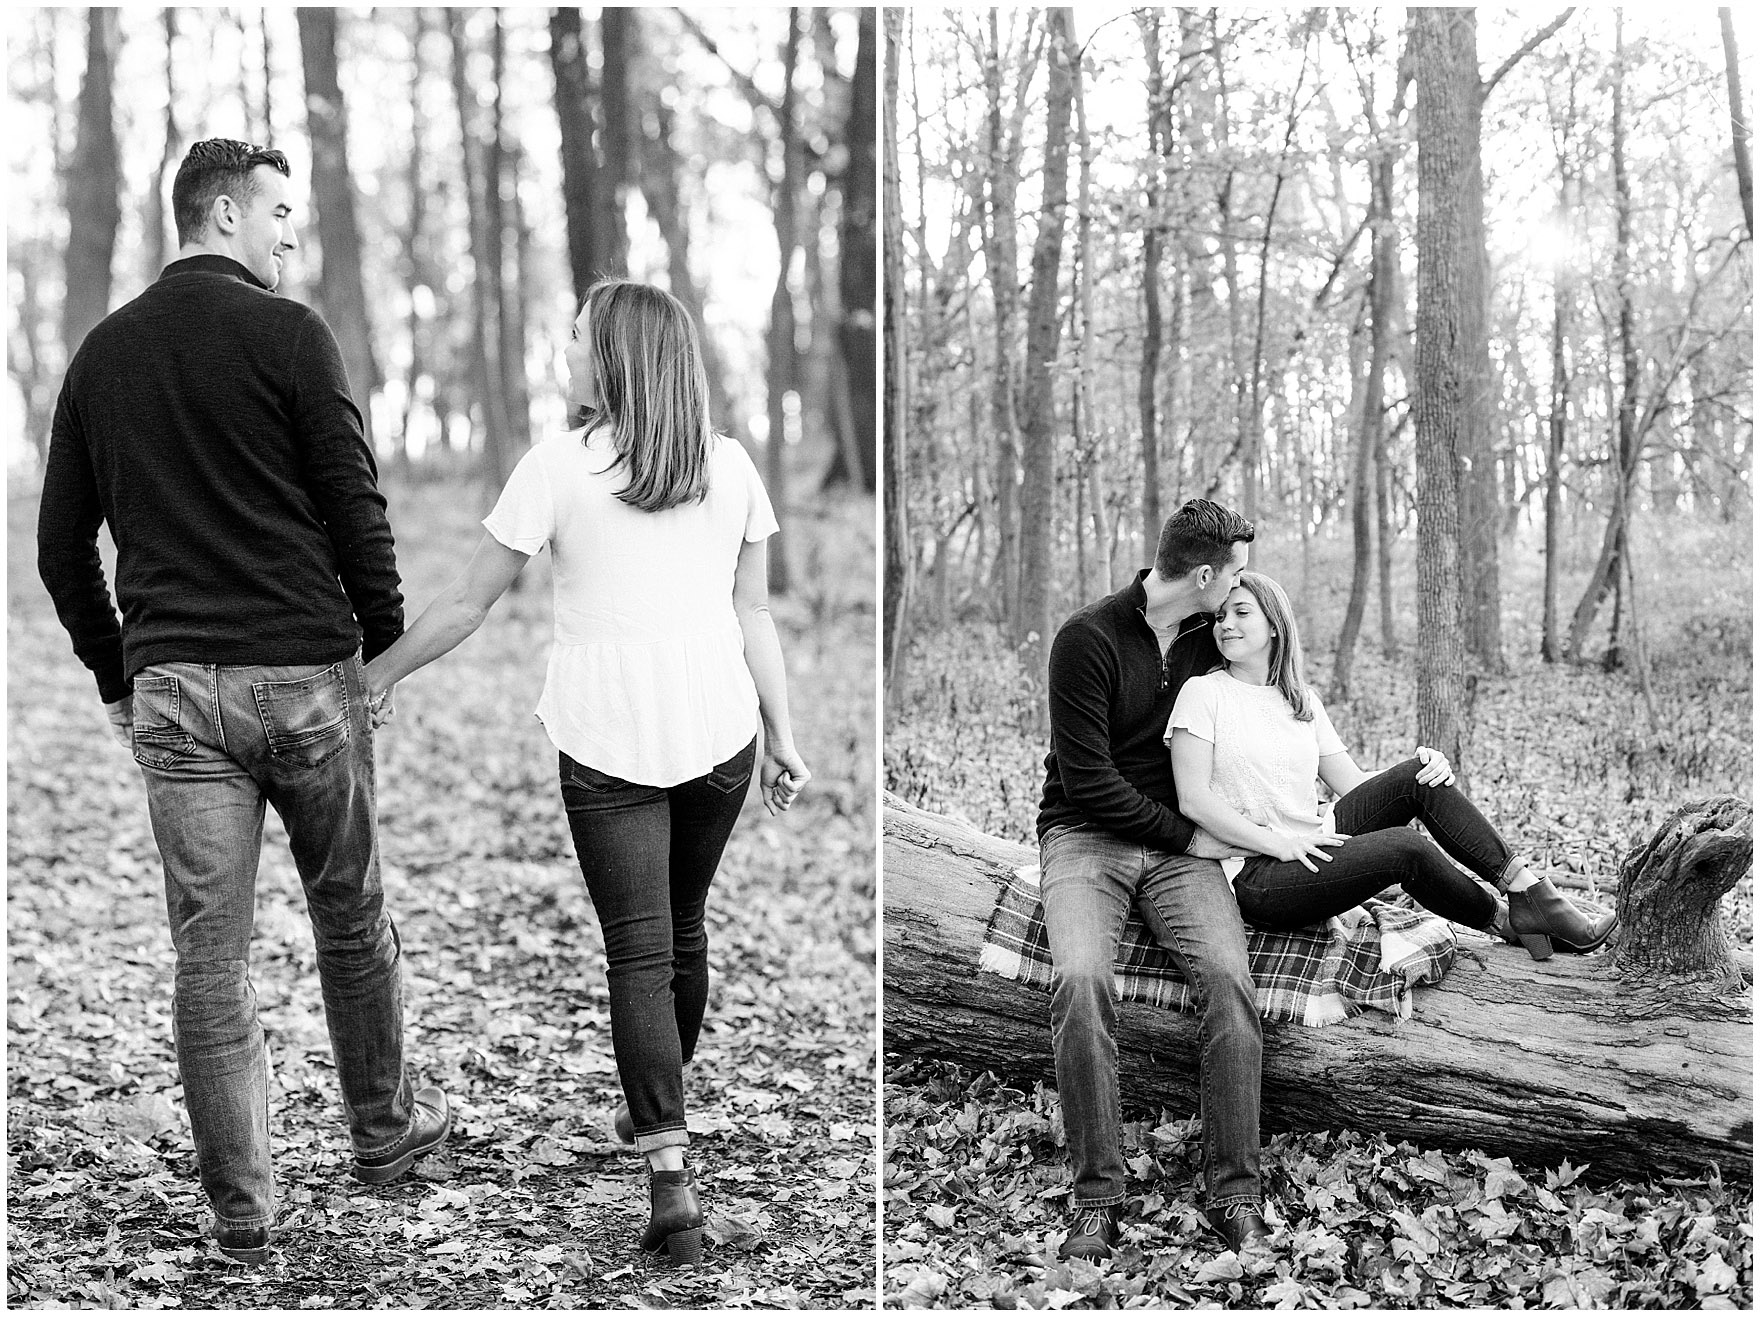 A couple sits on a fallen log during a fall woods engagement session.